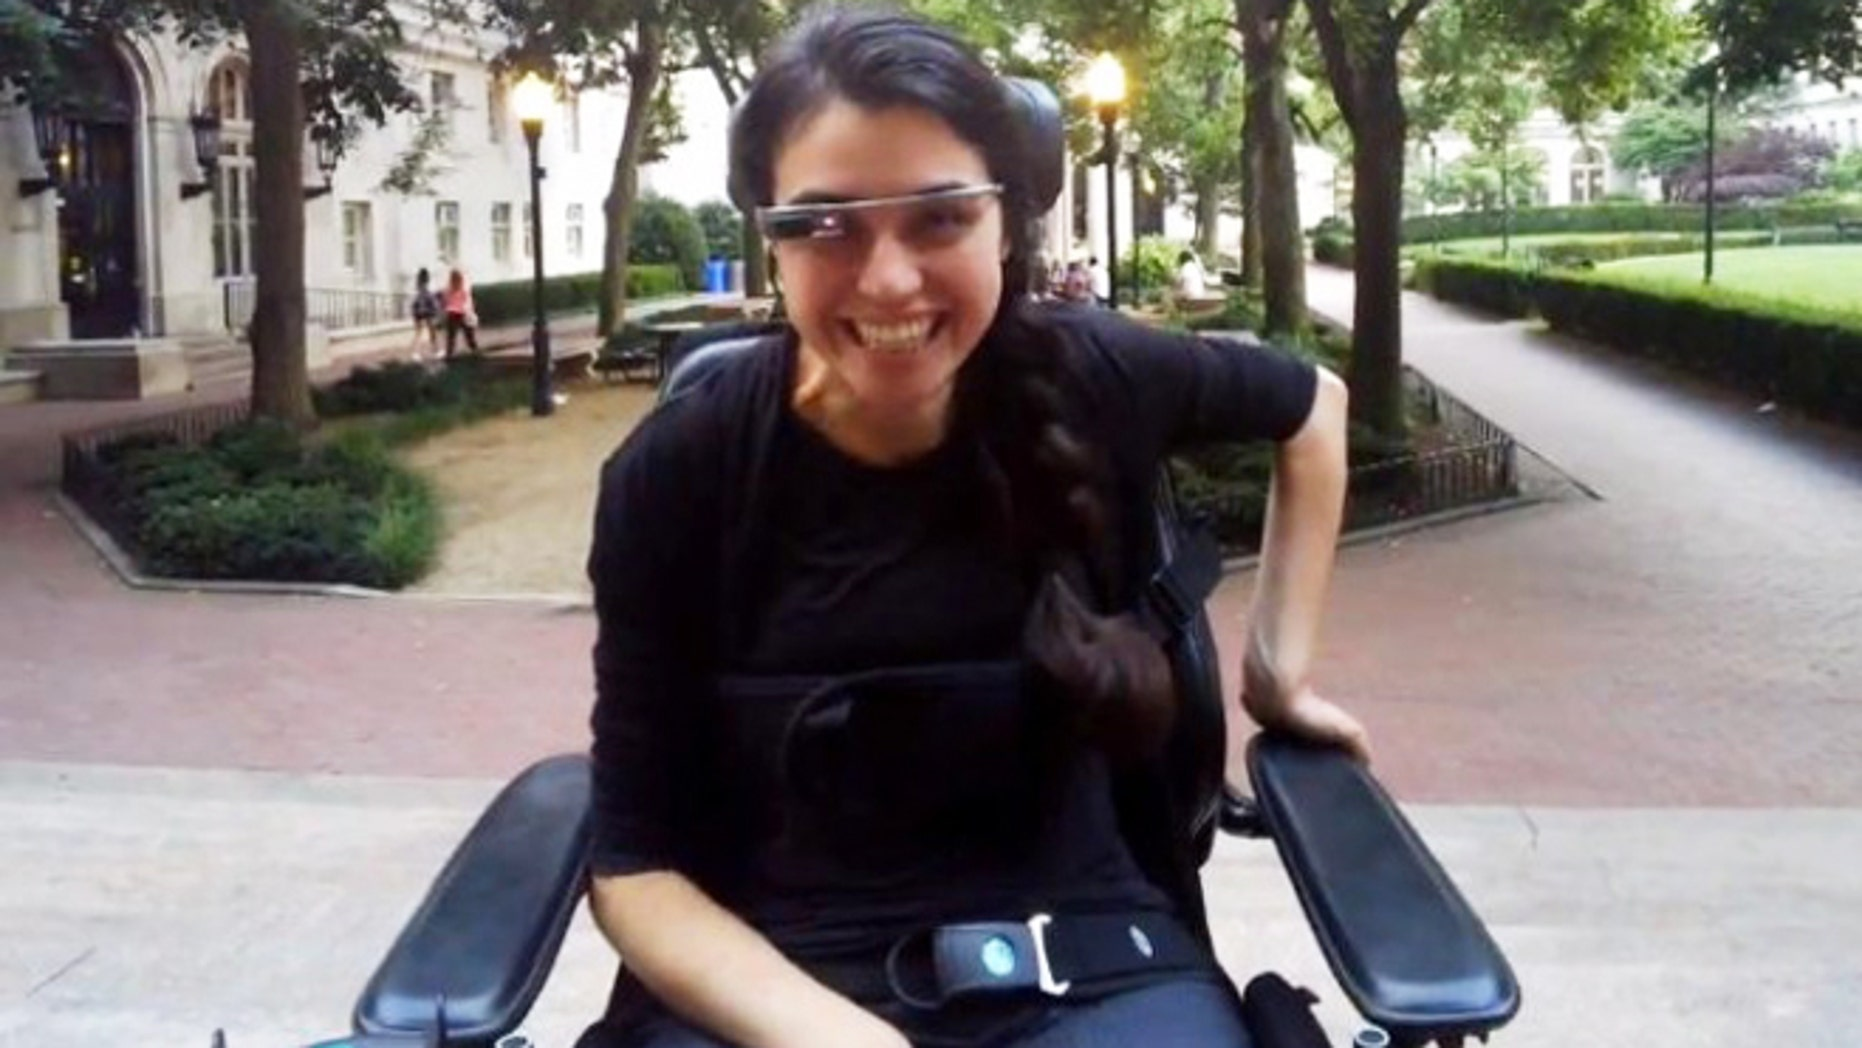 When Alex Blaszczuk heard earlier this year that Google was planning on handing out a pre-launch version of its revolutionary Glass device to thousands of individuals in a move to test and develop the product, she wanted in.